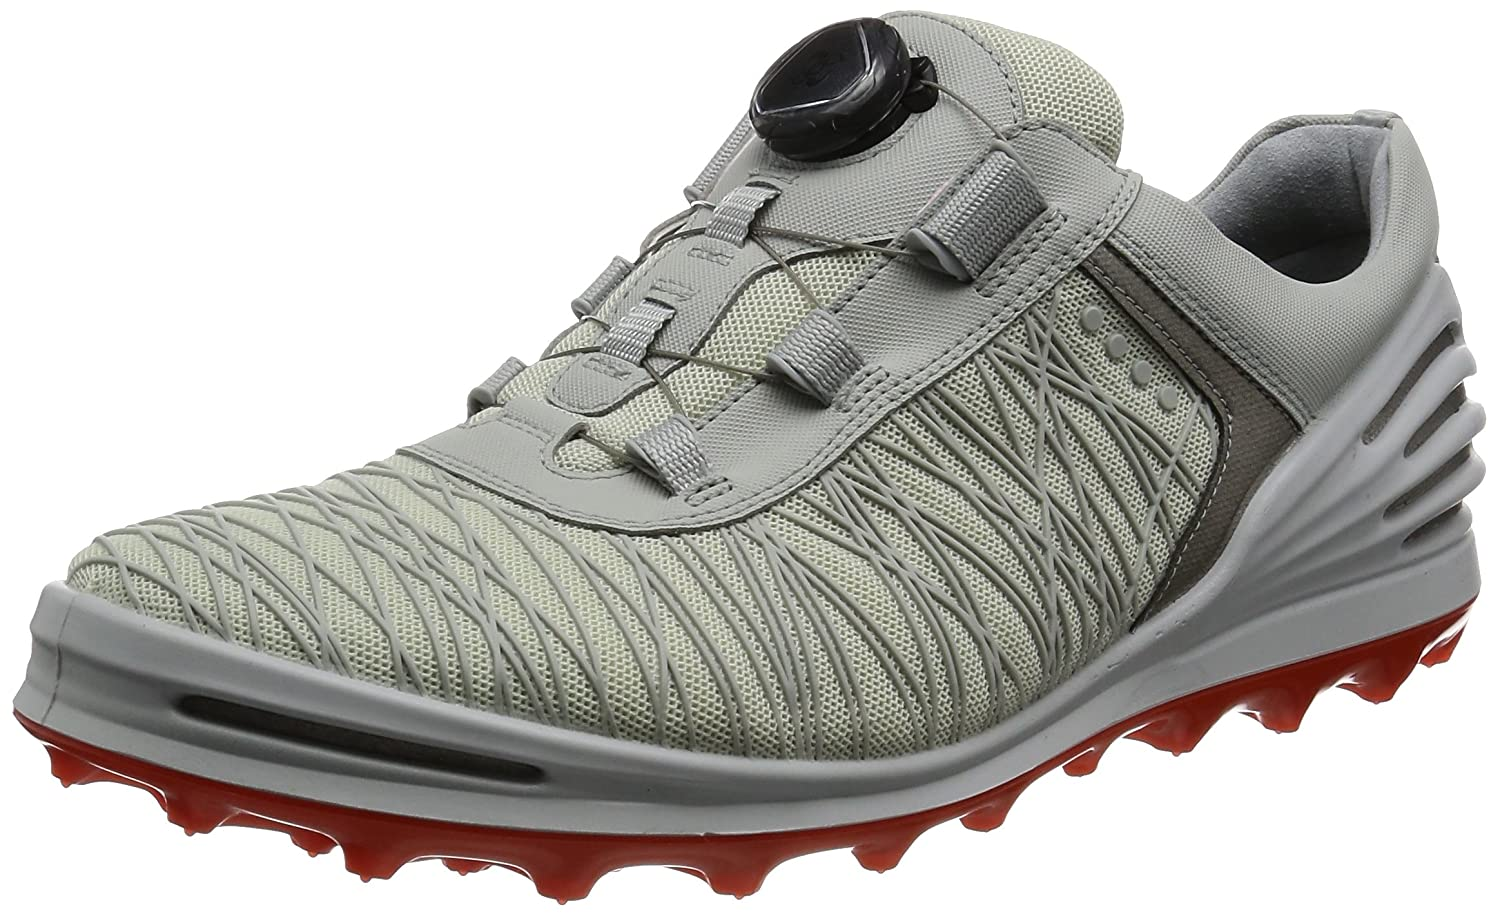 [エコー] ゴルフシューズ ECCO GOLF CAGE PRO 133014 B01KIHNOES 47 M EU / 13-13.5 D(M) US Shadow White